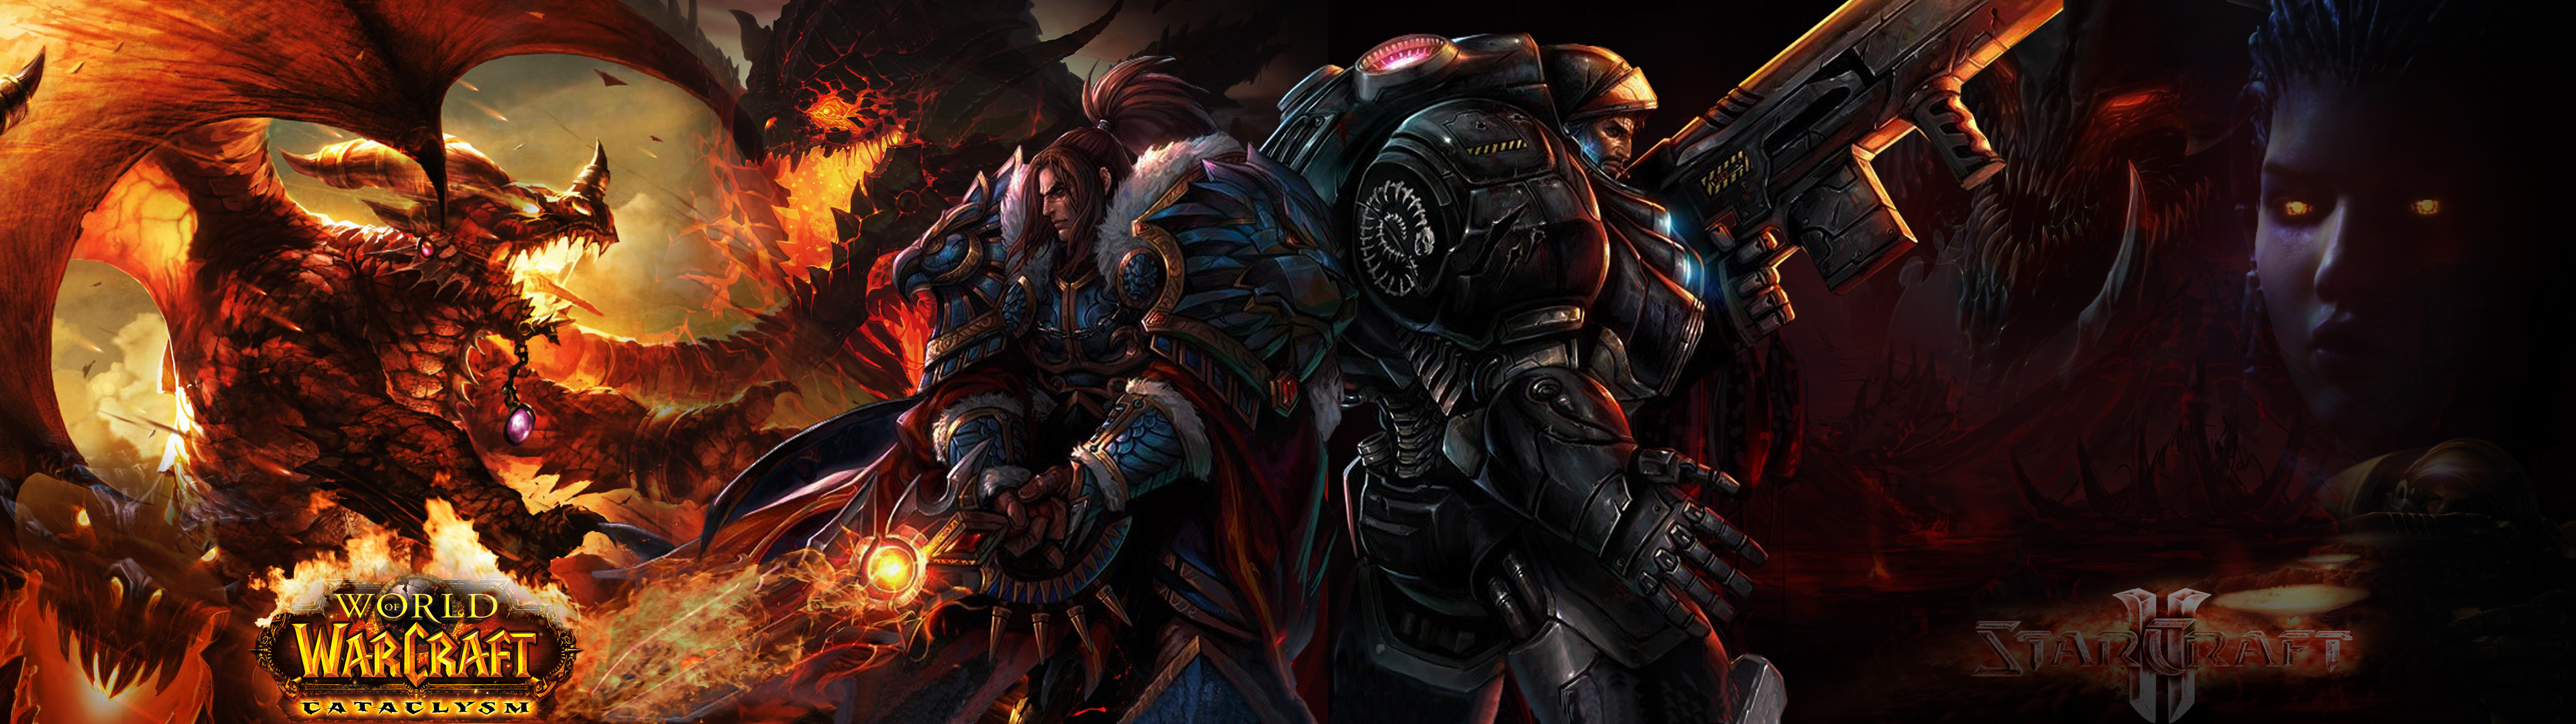 DeviantArt: More Like WoW and SC2 Dual Screen Wallpaper by CHIPINATORs